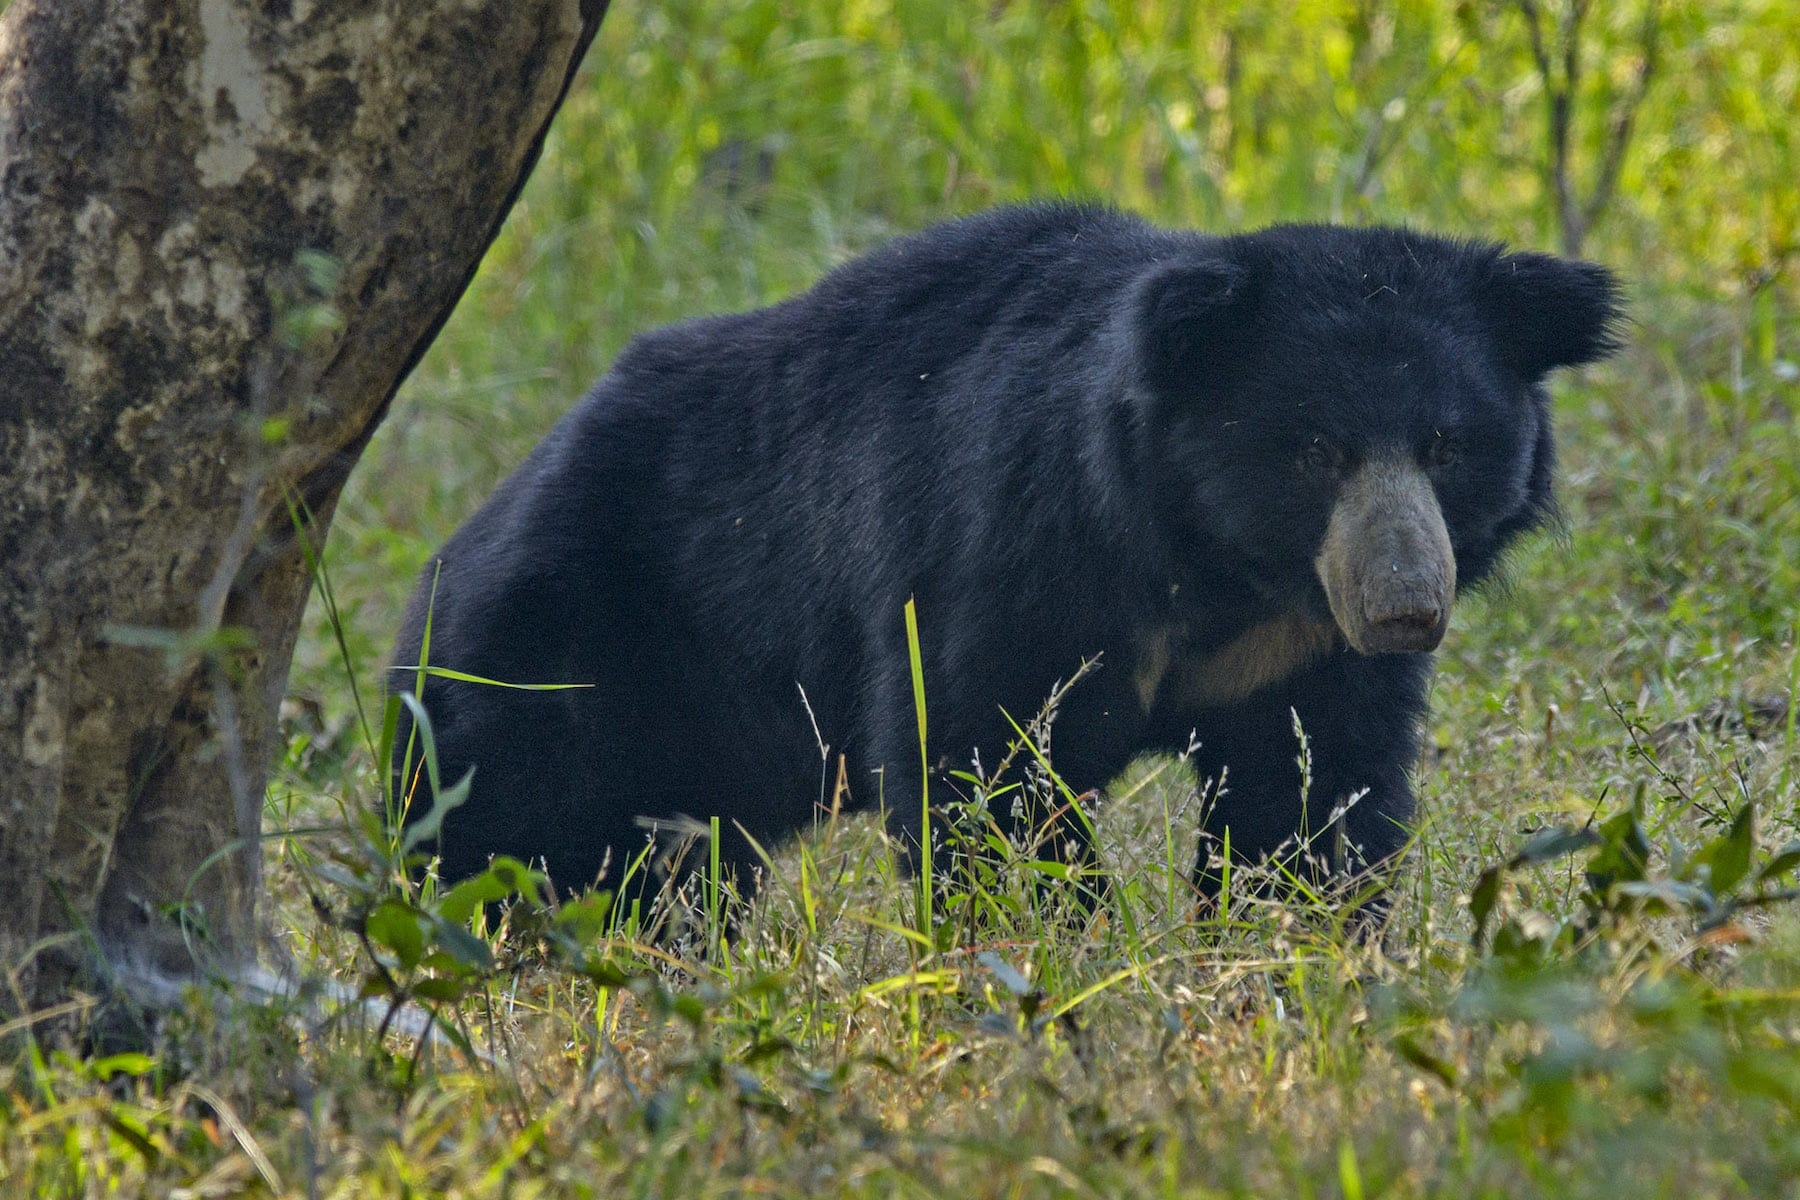 The termite and ant-eating sloth bear is equally elusive in these forests.